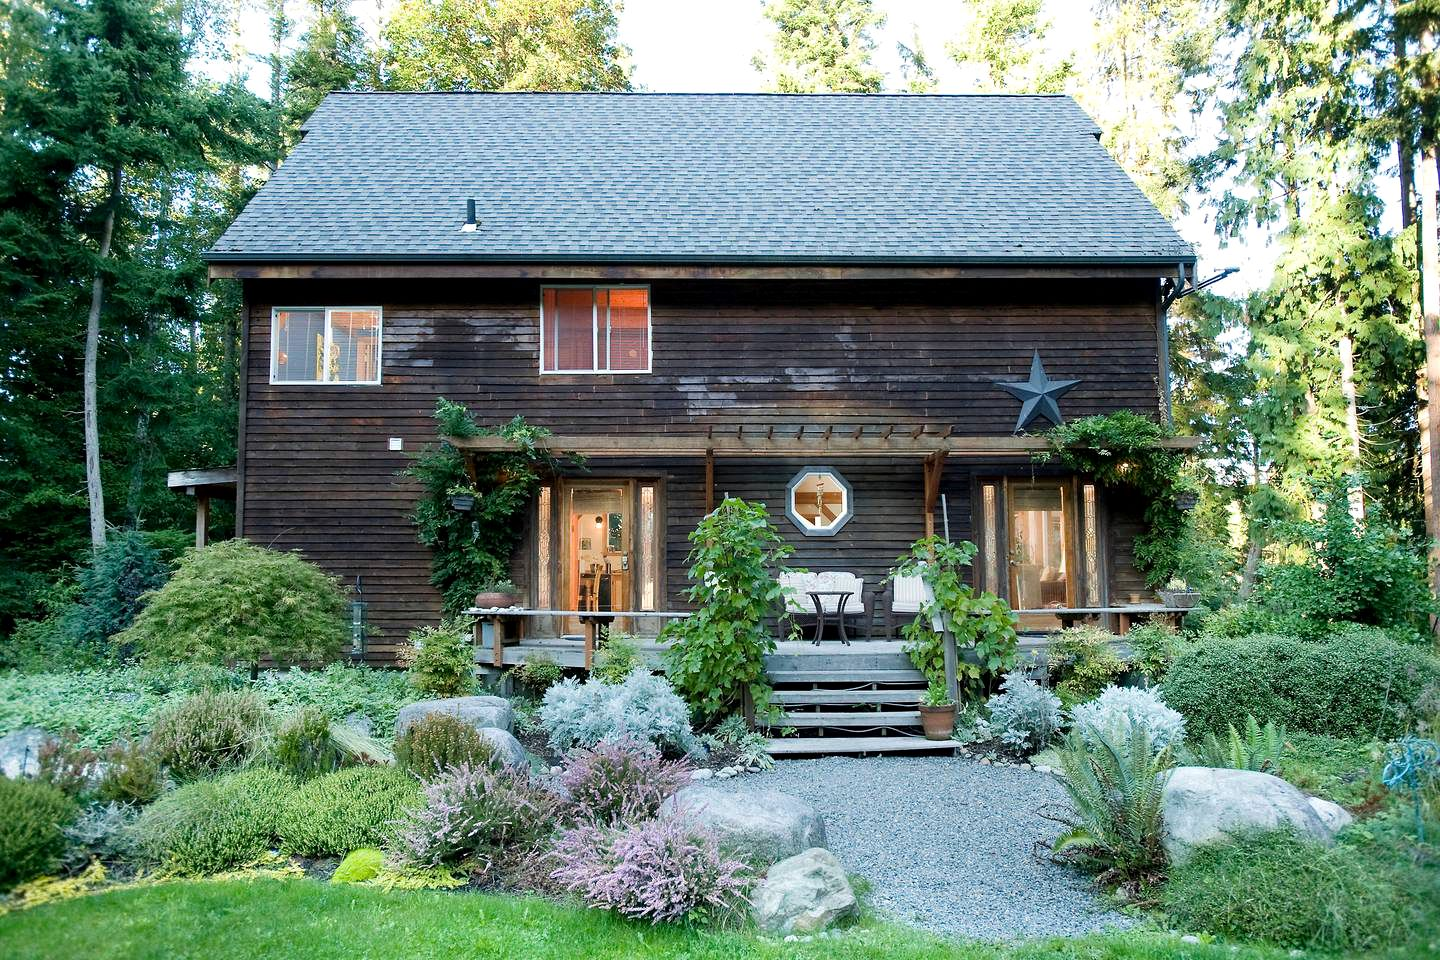 Cabins (Camano Island, Washington, United States)